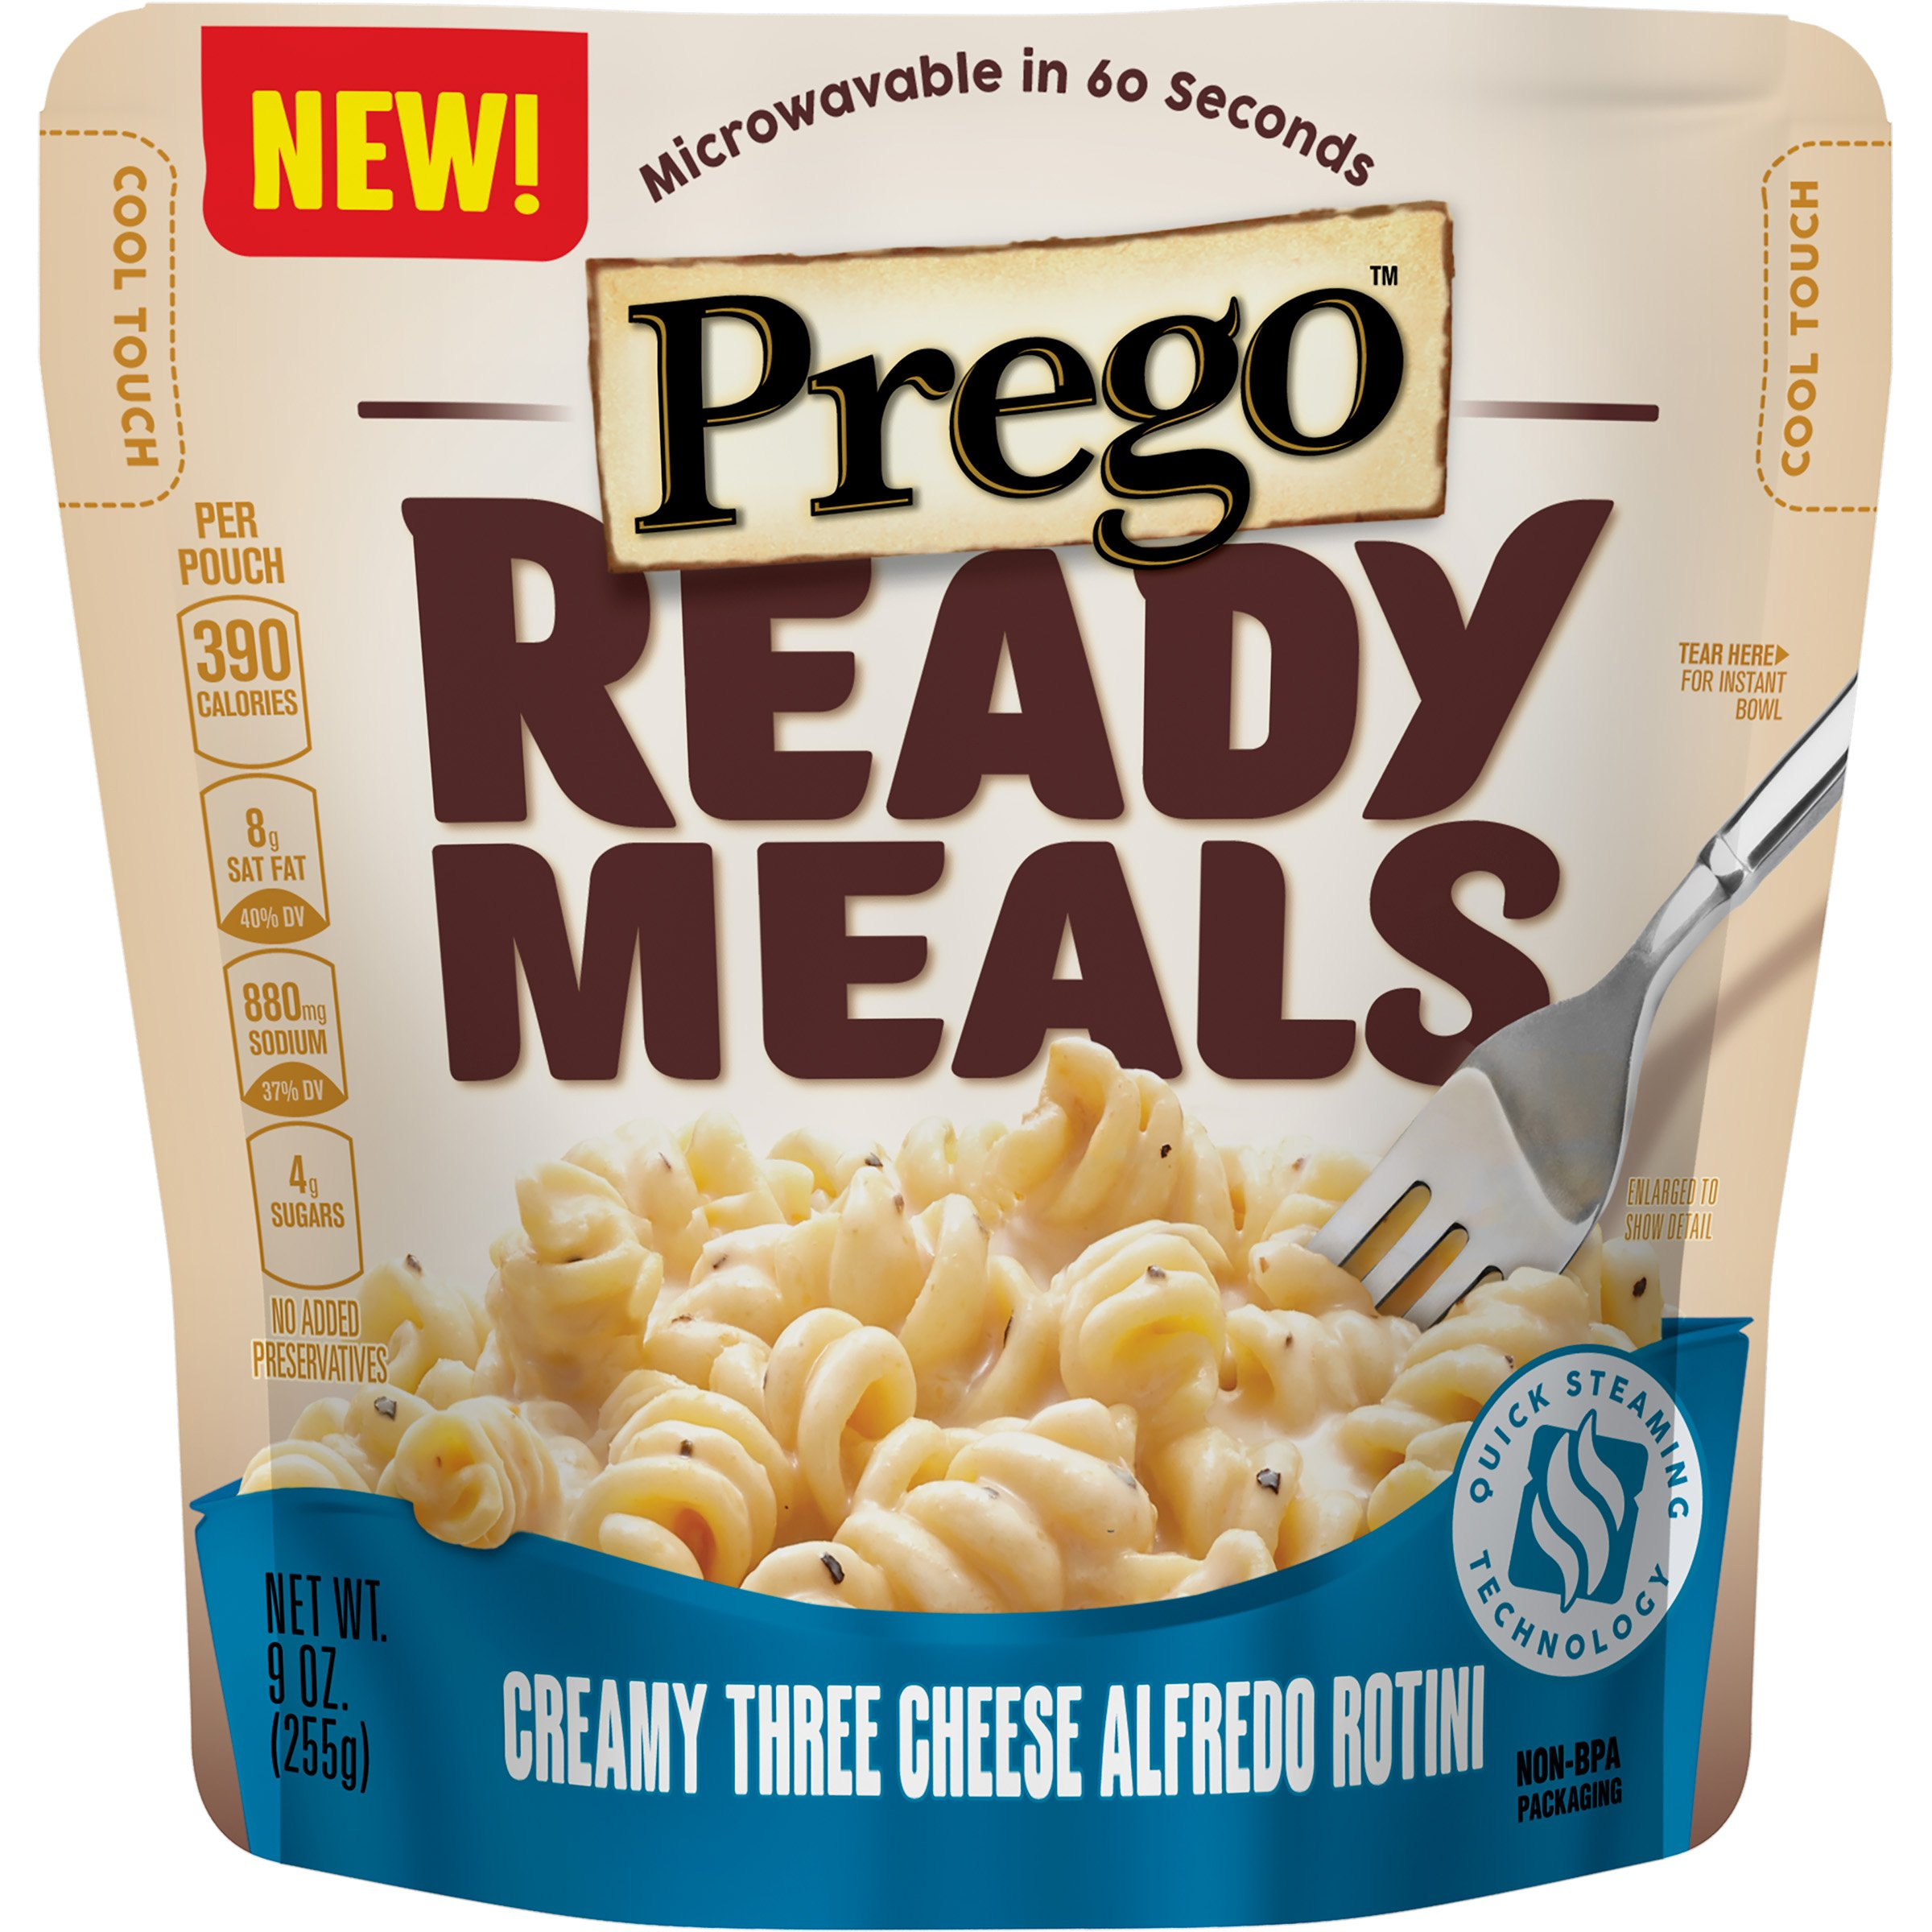 Prego Ready Meals, Creamy Three Cheese Alfredo Rotini, 9 oz (Pack of 6) by Prego